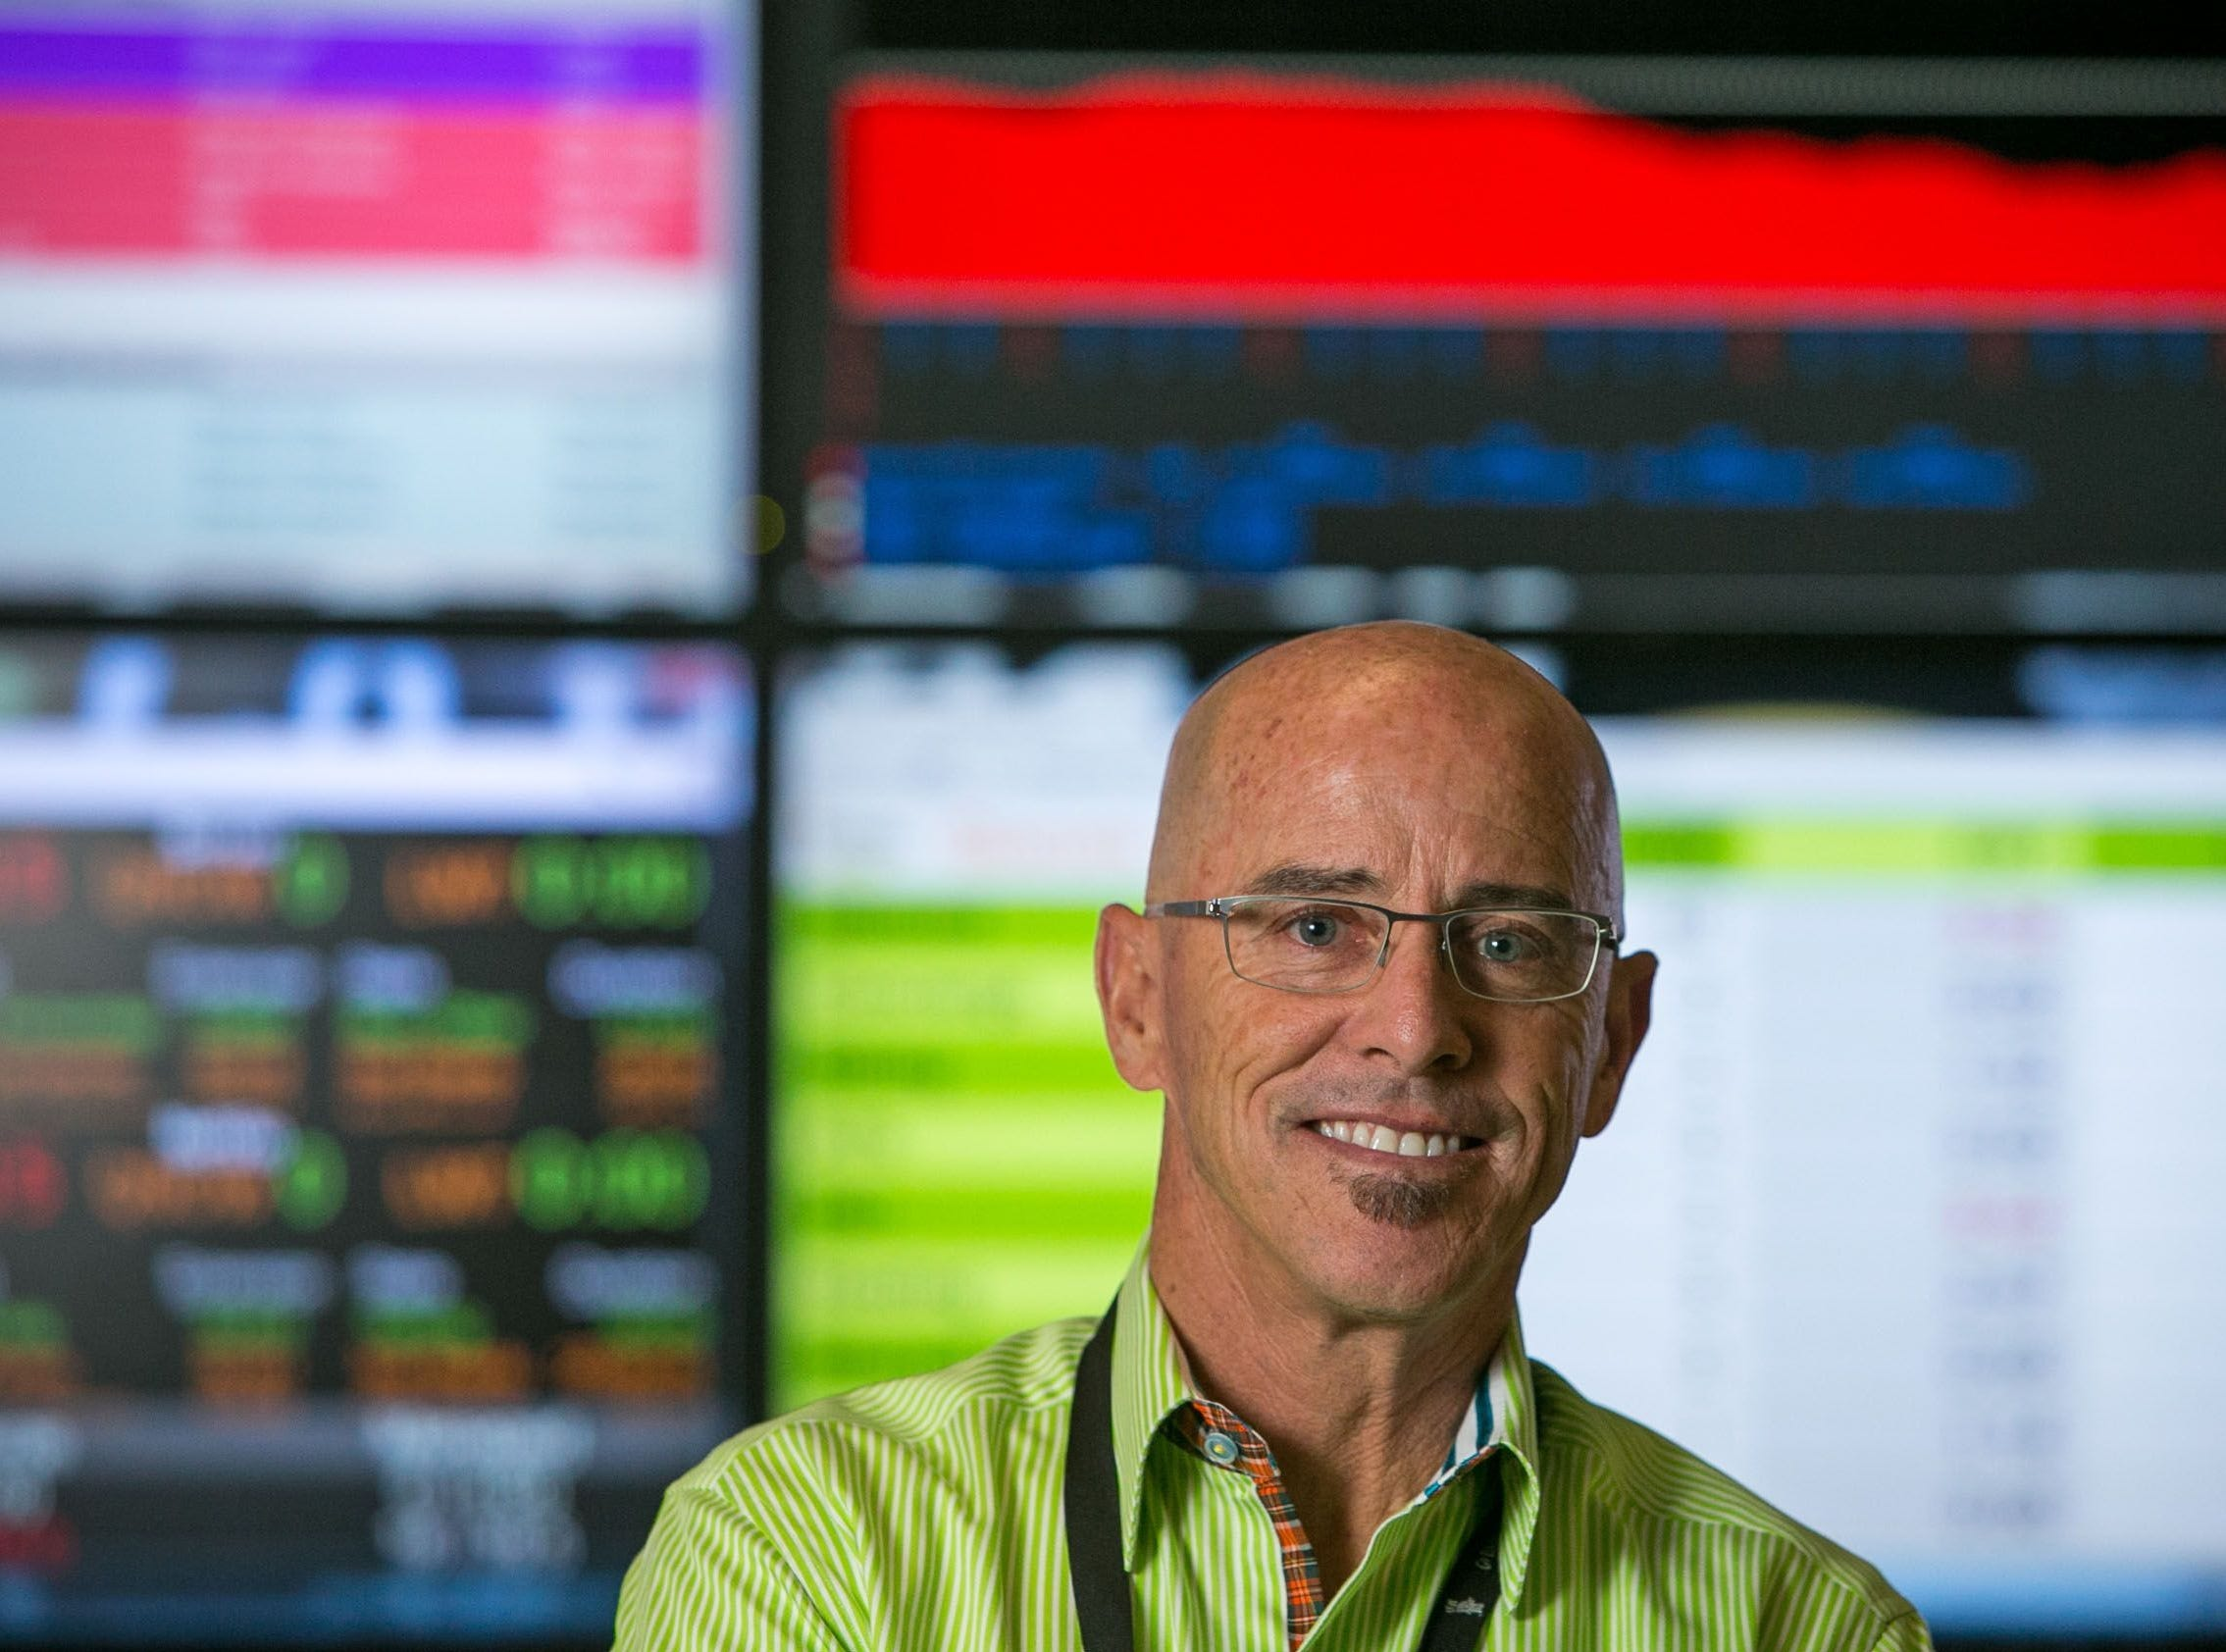 GoDaddy Inc.'s Blake Irving (ex-CEO): Summary compensation: $2,005,759. Adjusted compensation: $18,253,200. TTM profit: $139 million. TTM revenue: $2.4 billion. 2017 stock: 43.9 percent. Capitalization: $13.1 billion.